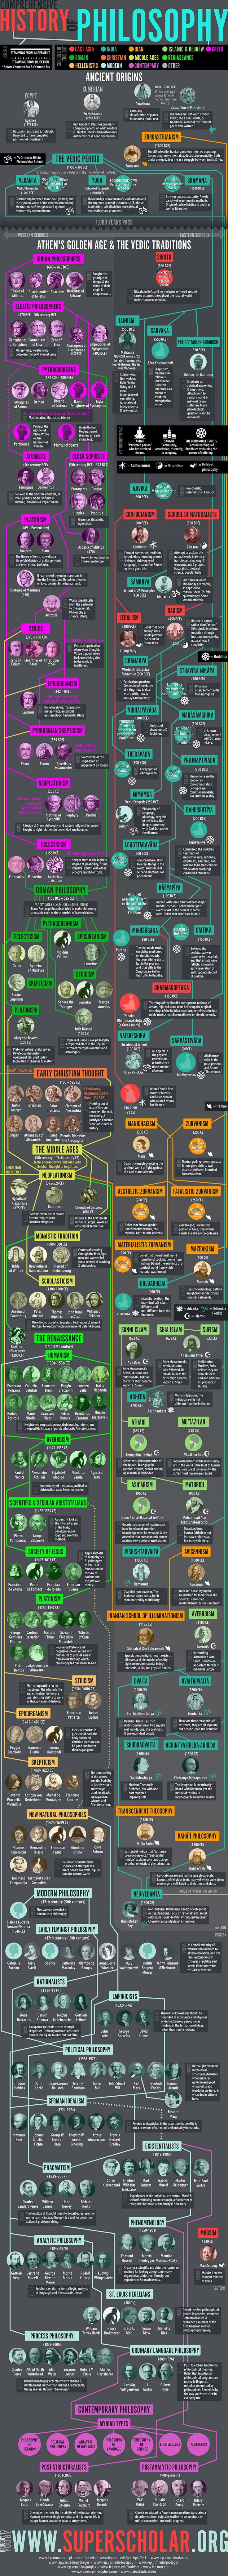 Comprehensive History of Philosophy #Infographic #Infografía